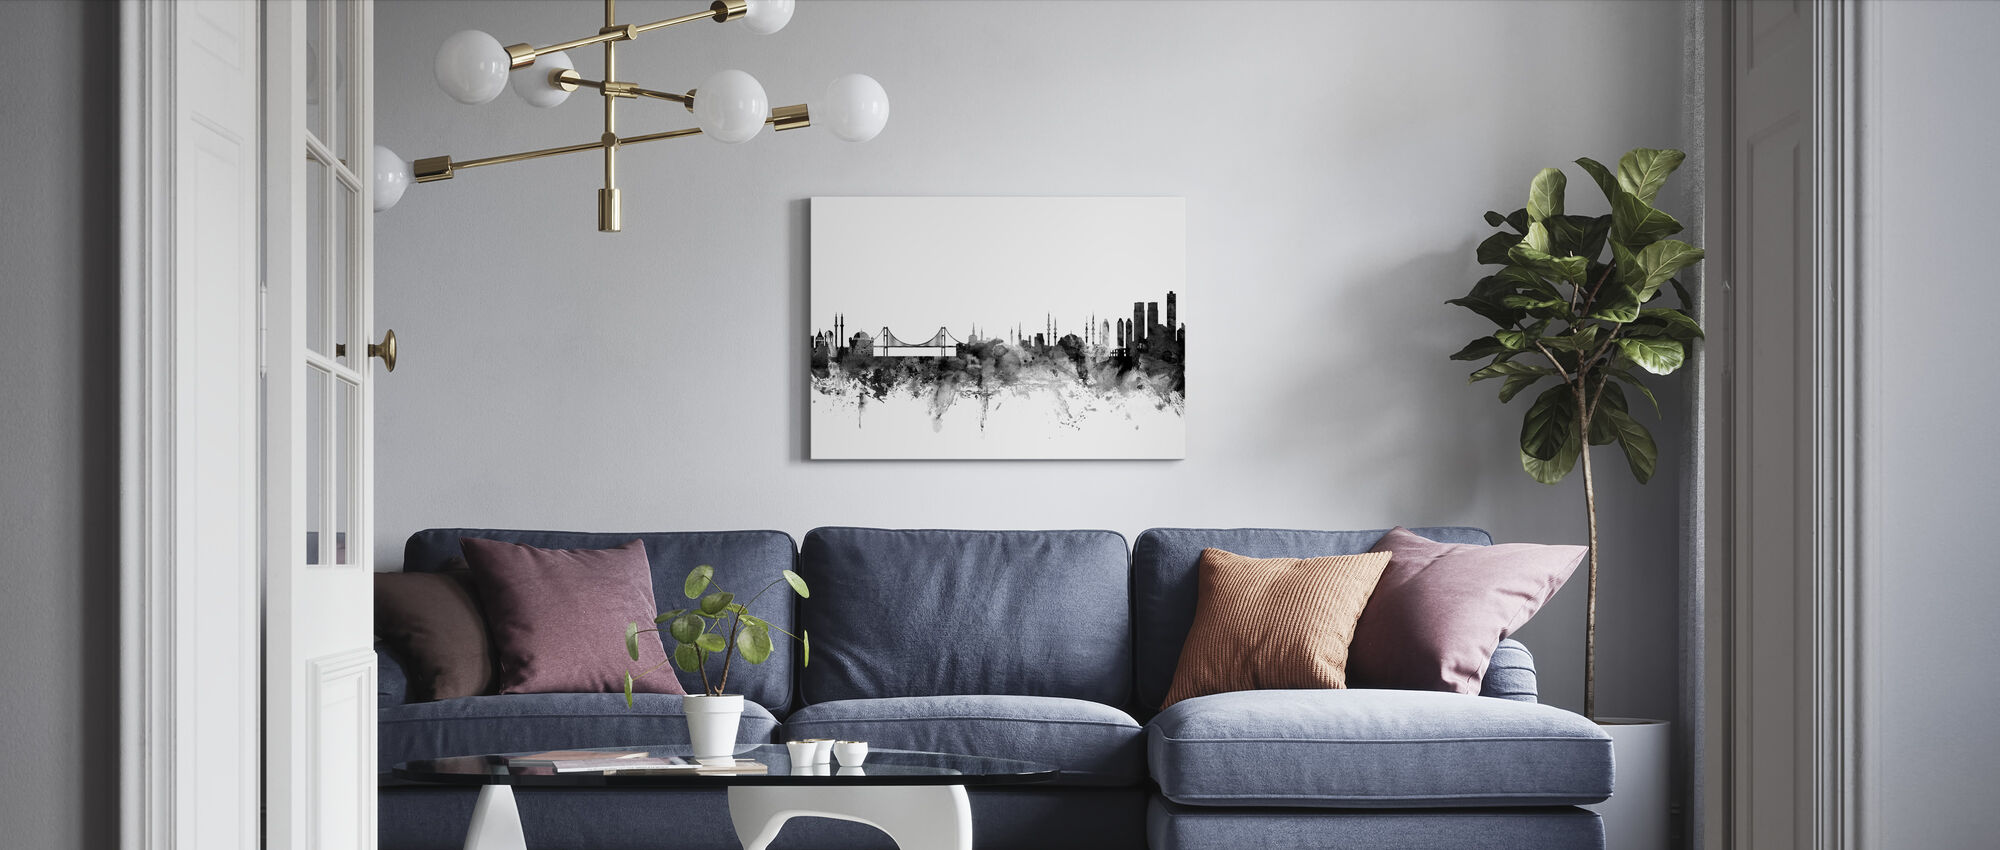 Istanbul Skyline Black - Canvas print - Living Room